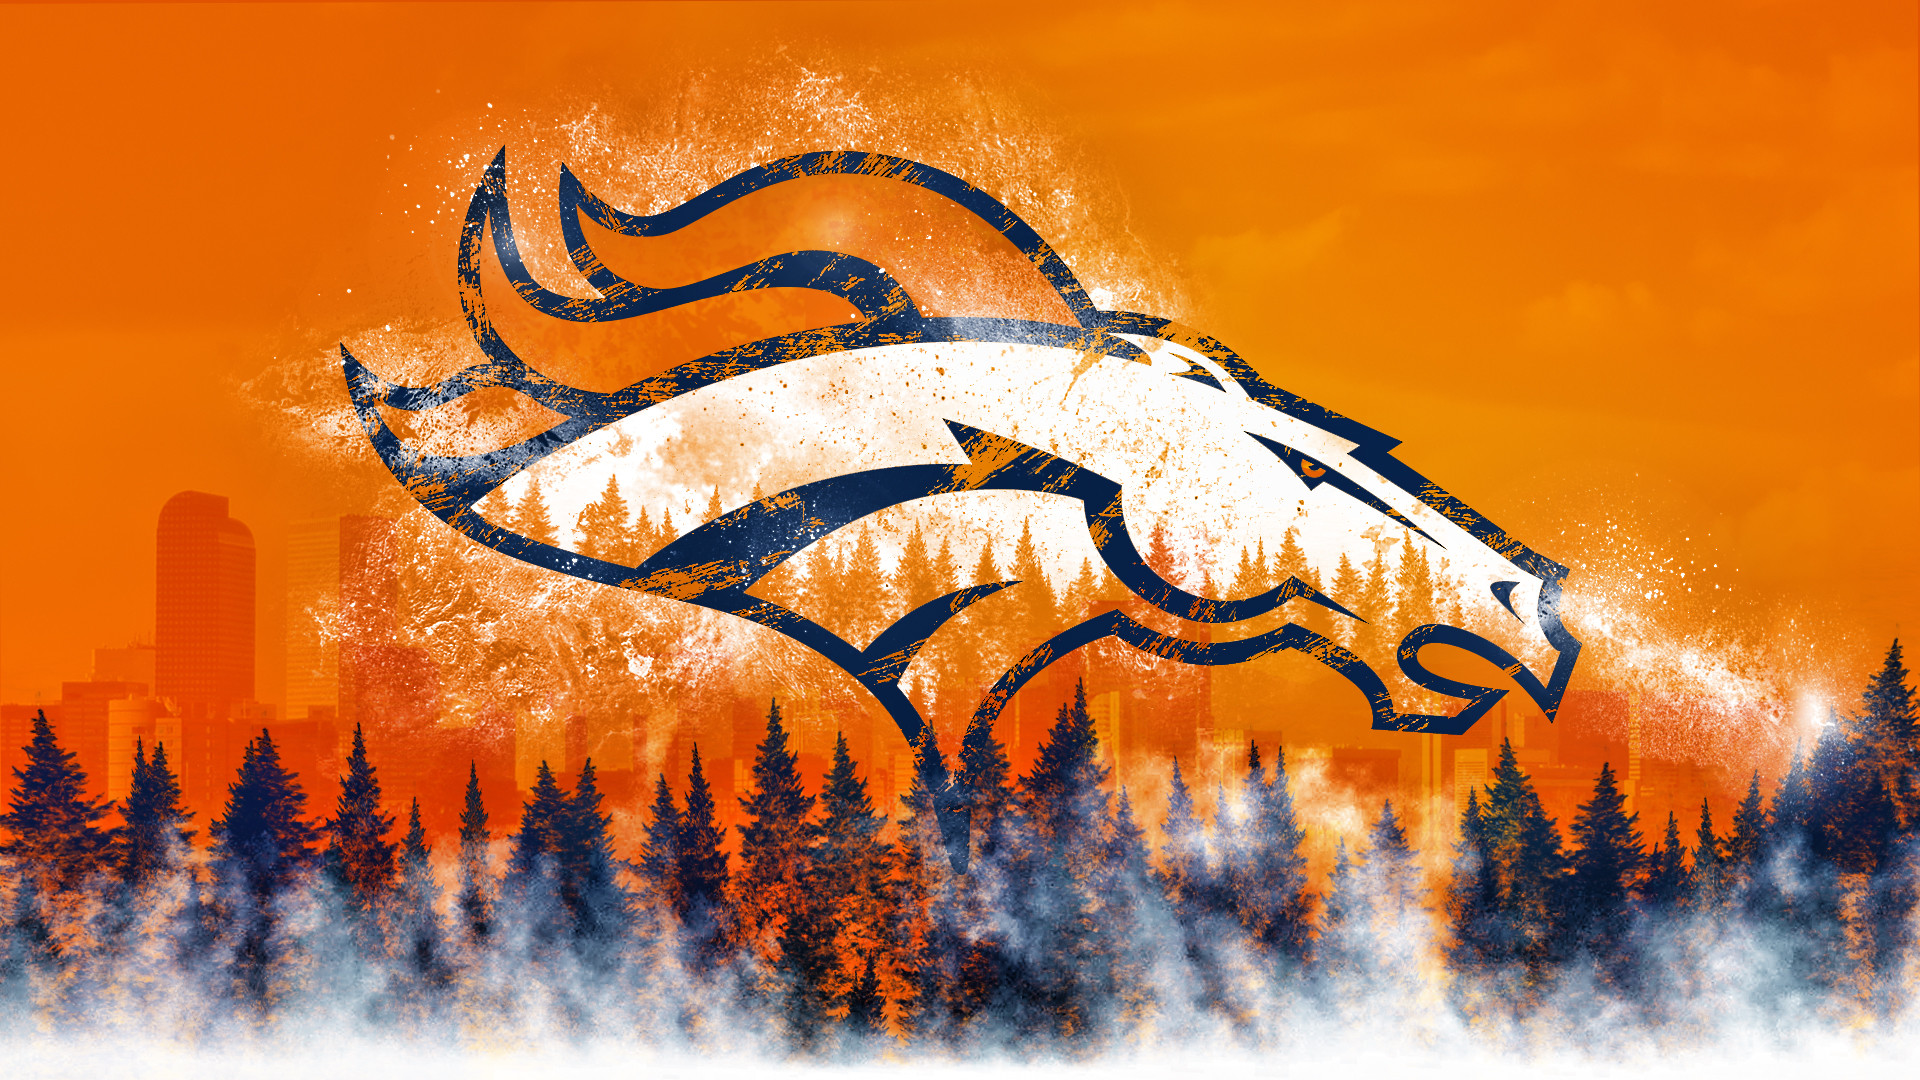 Cool denver broncos wallpapers 76 images - Cool broncos wallpapers ...